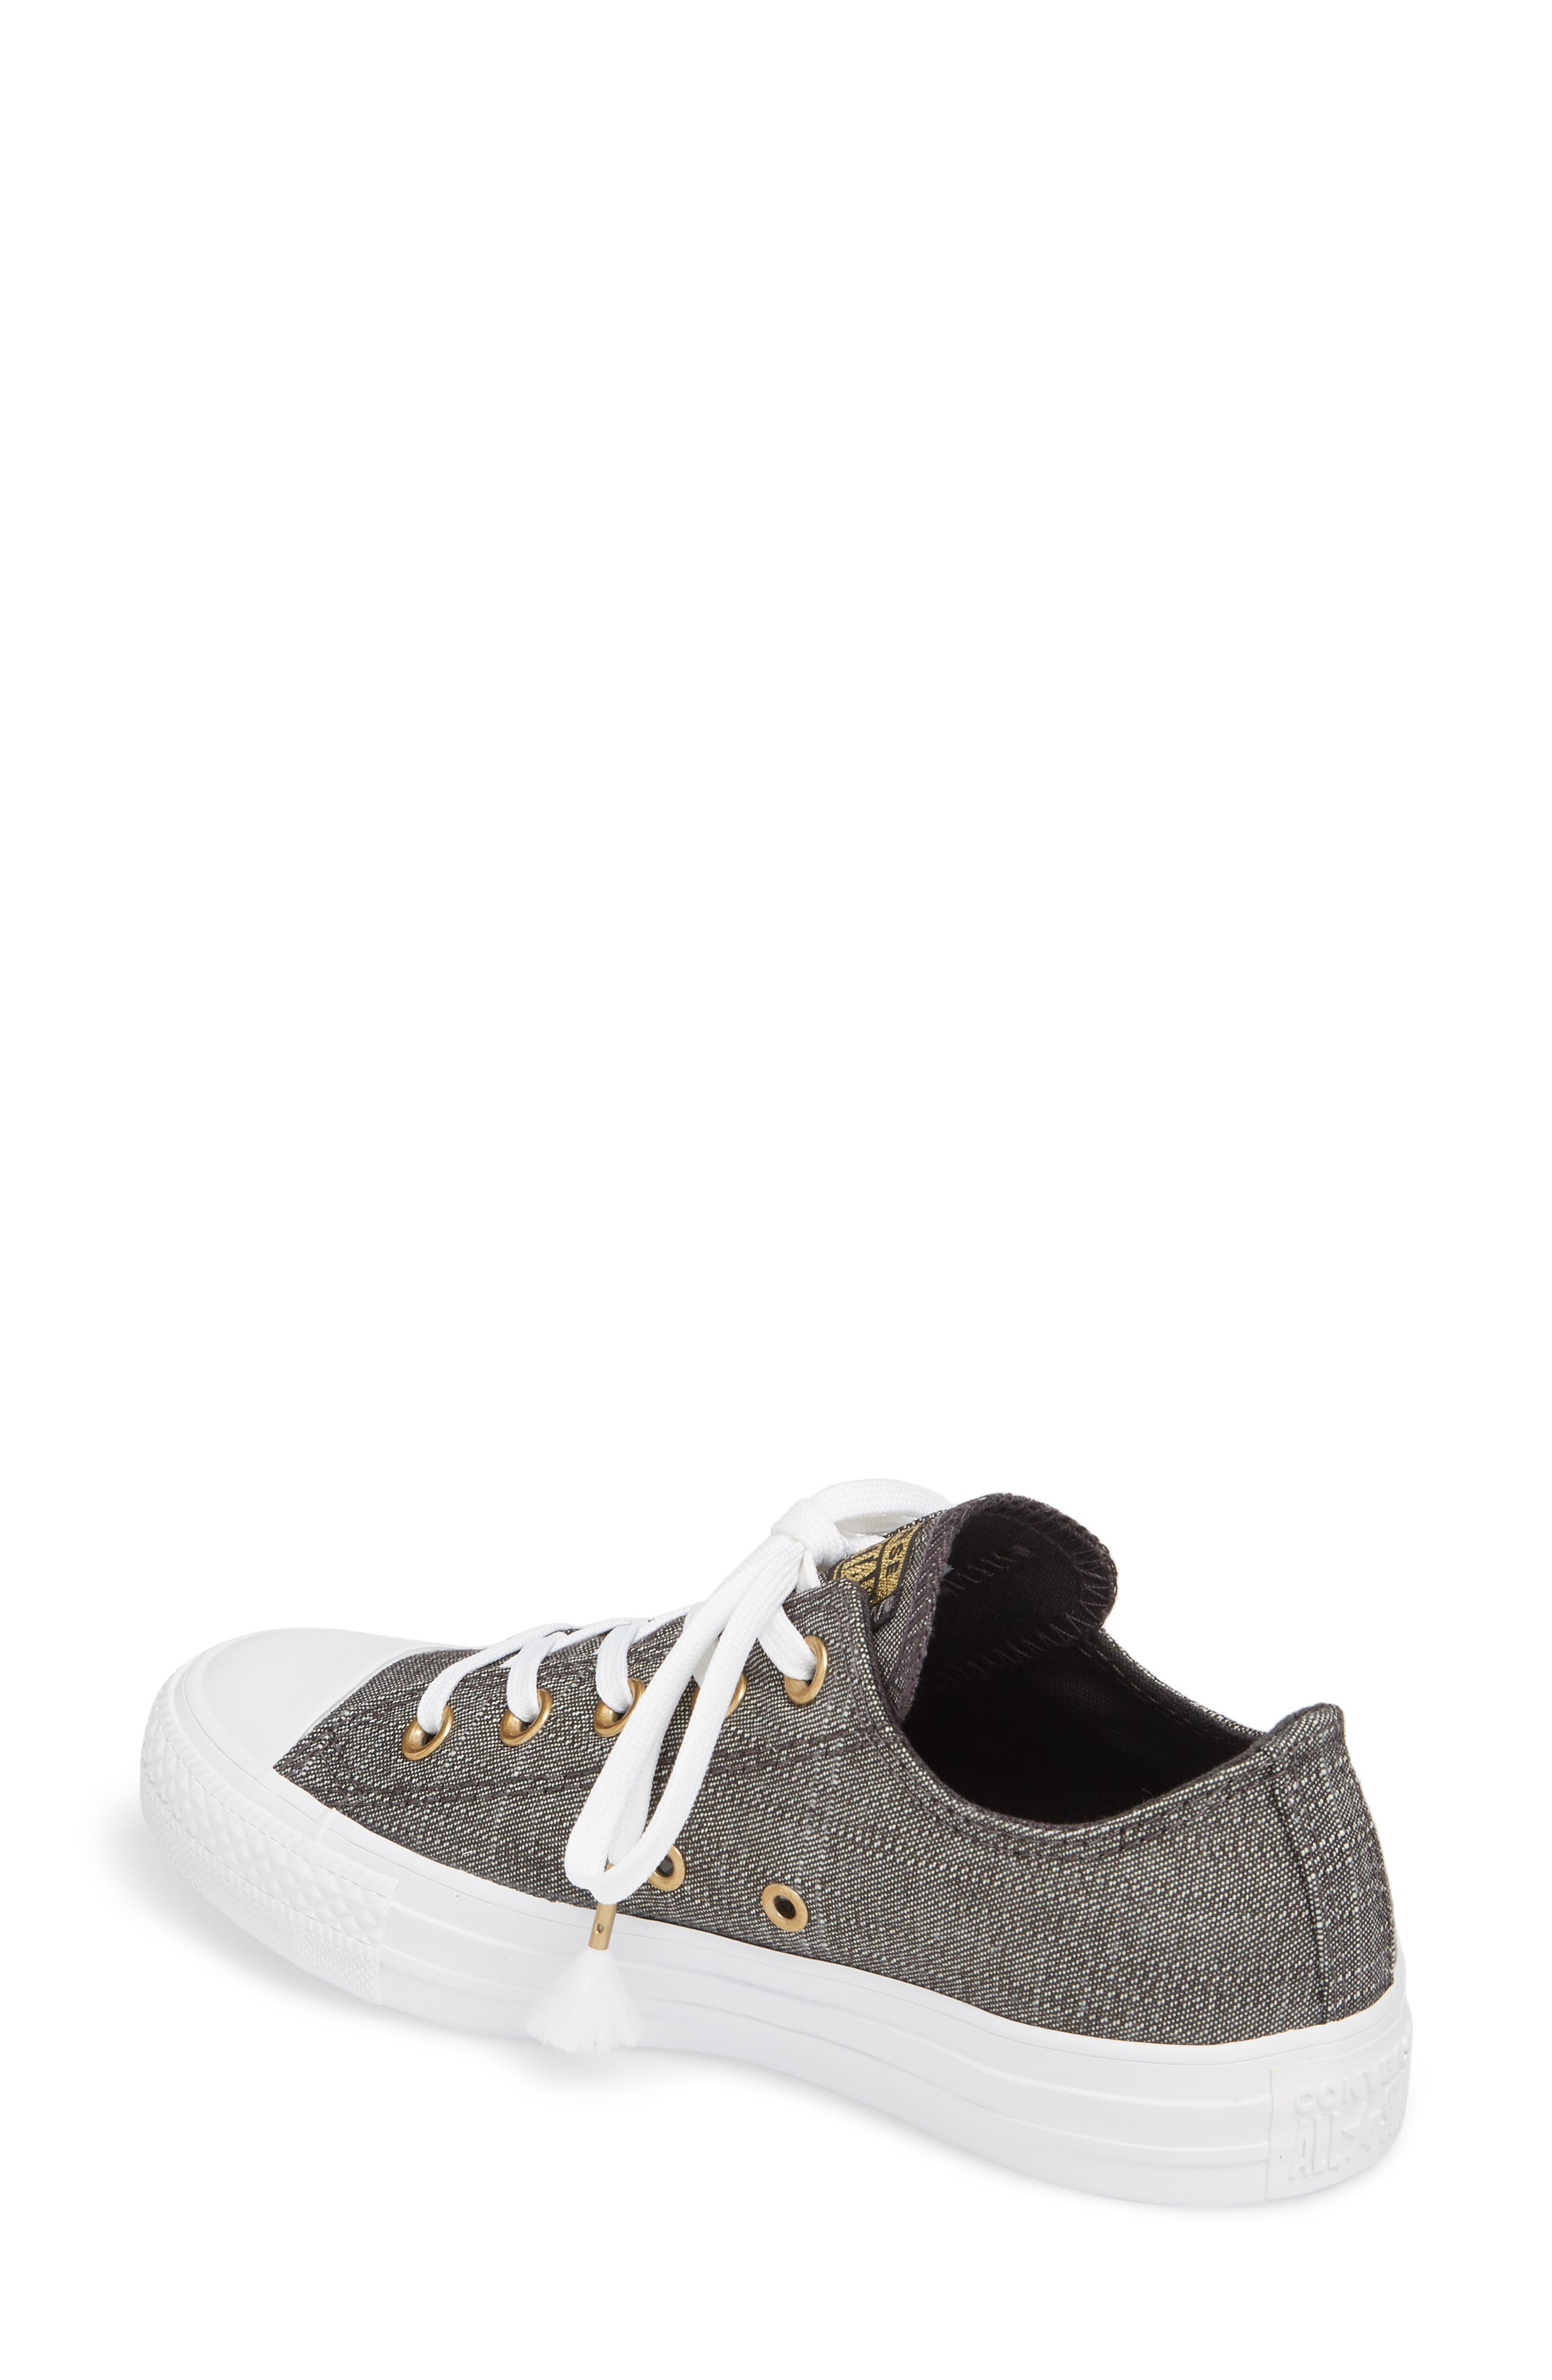 Chuck Taylor<sup>®</sup> All Star<sup>®</sup> Washed Linen Low Top Sneaker,                             Alternate thumbnail 2, color,                             006